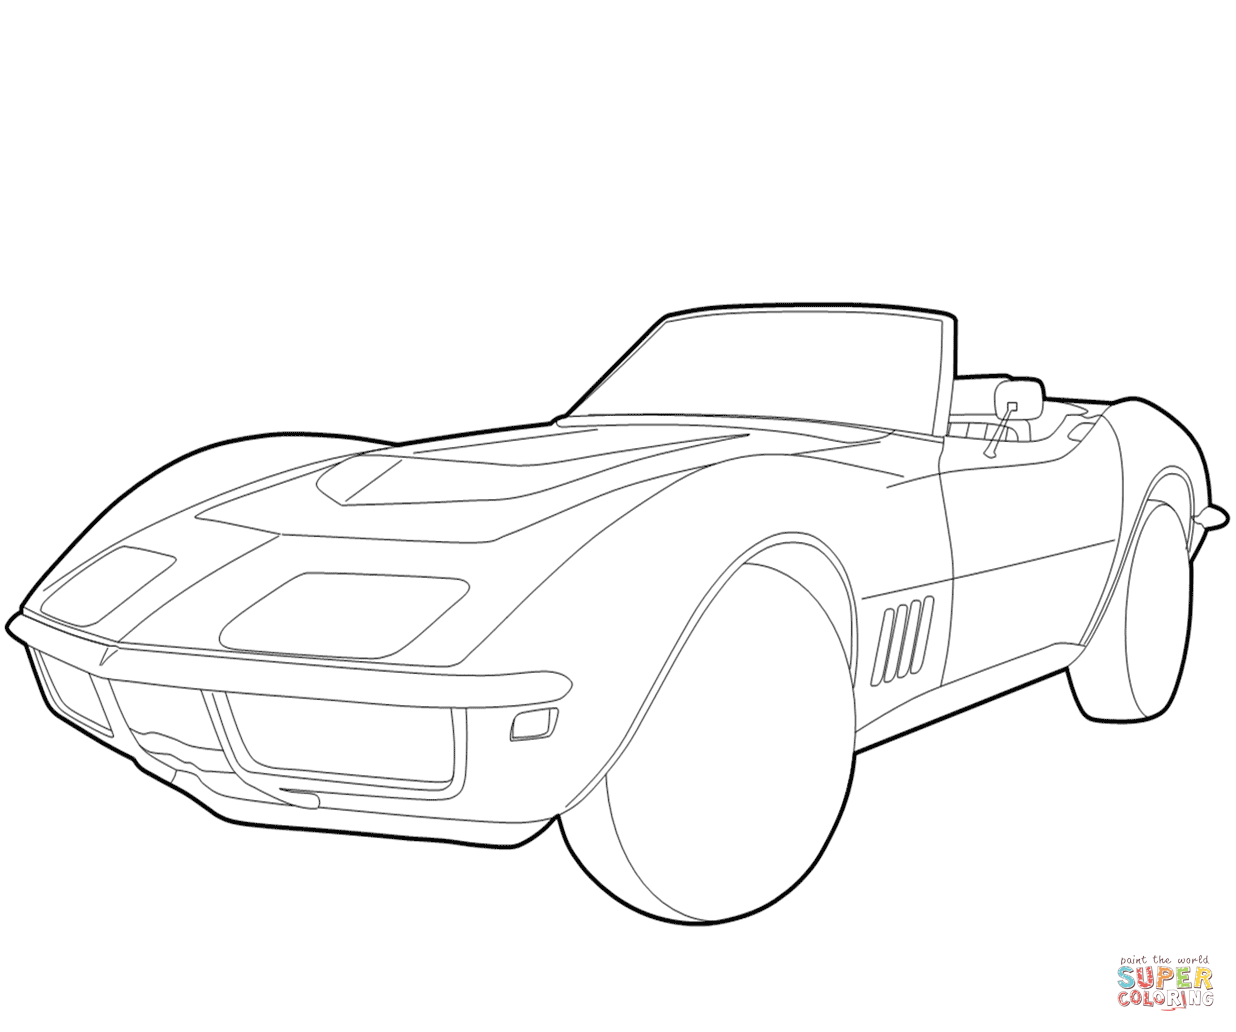 Camaro Drawing At Getdrawings